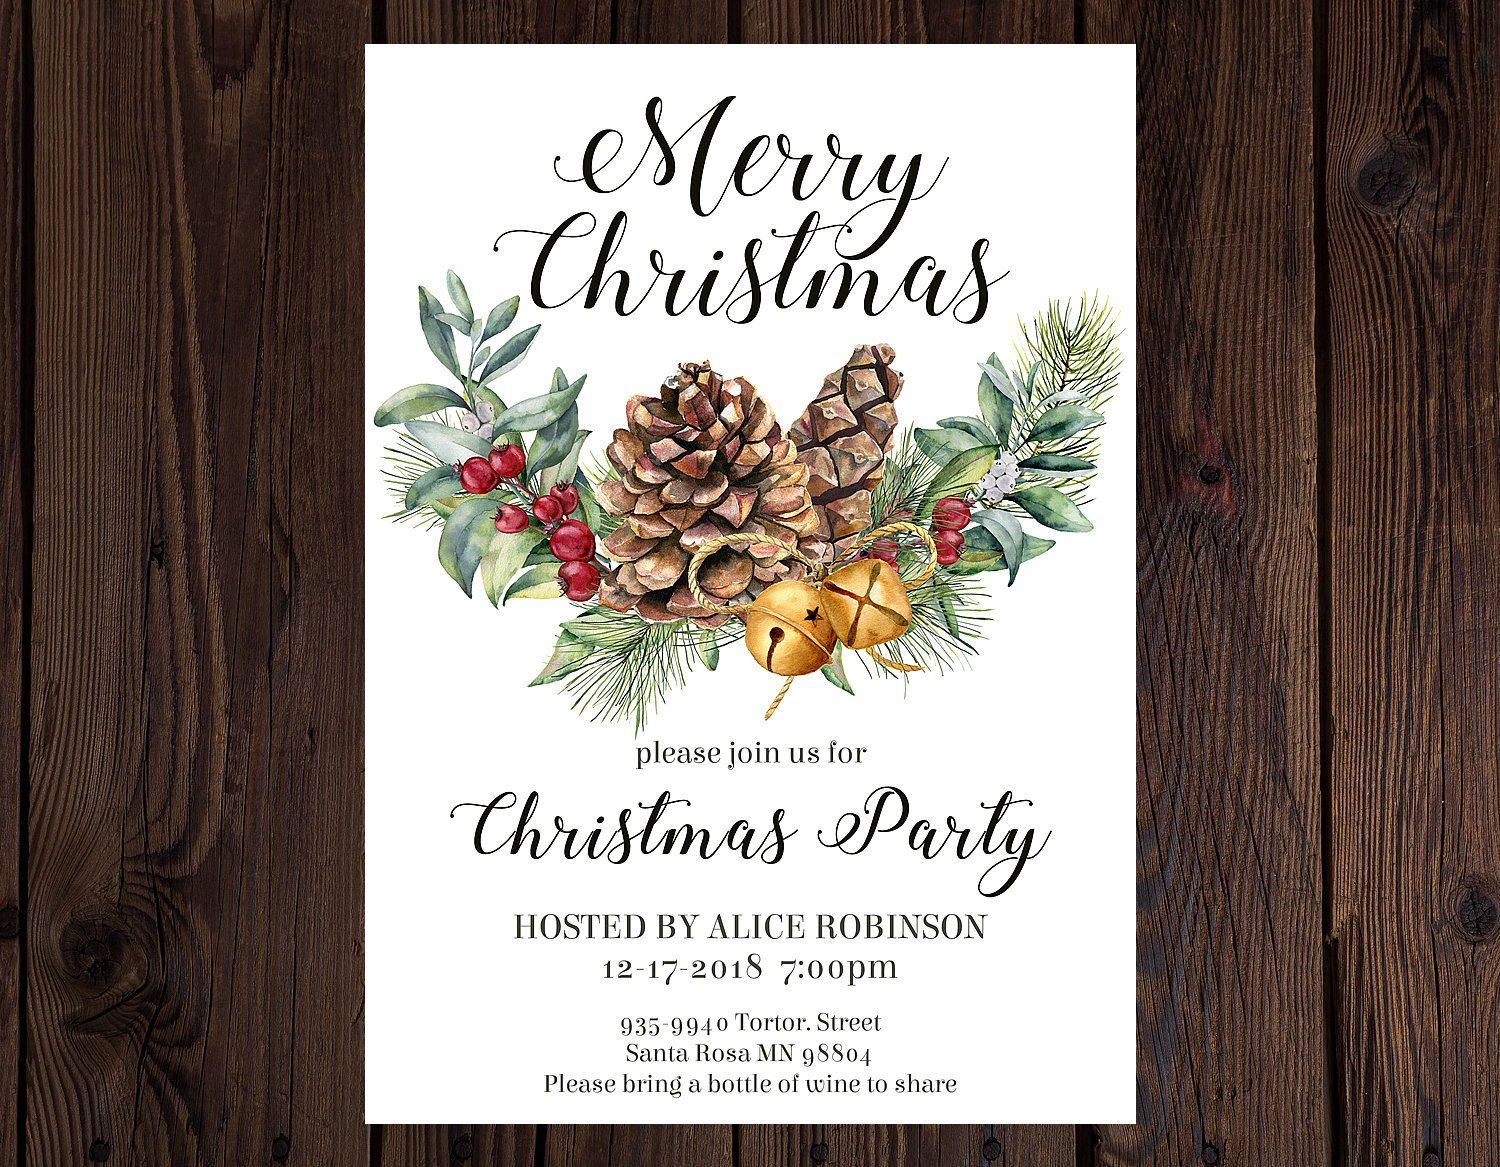 Christmas Party Invitation, Christmas Dinner invitations, Watercolor ...